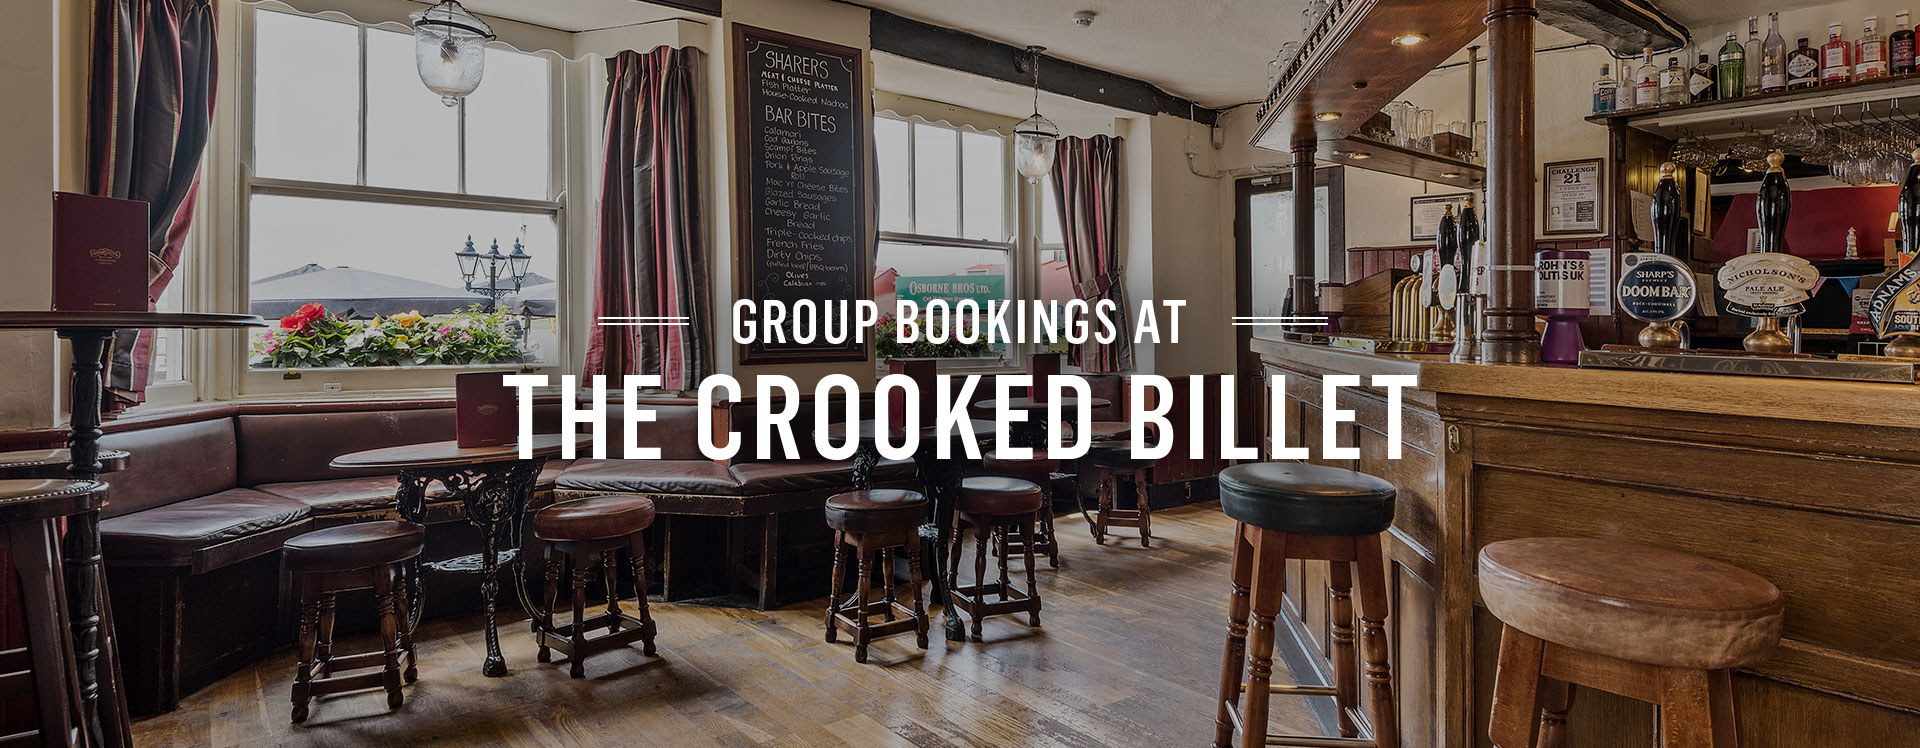 Group Bookings at The Crooked Billet